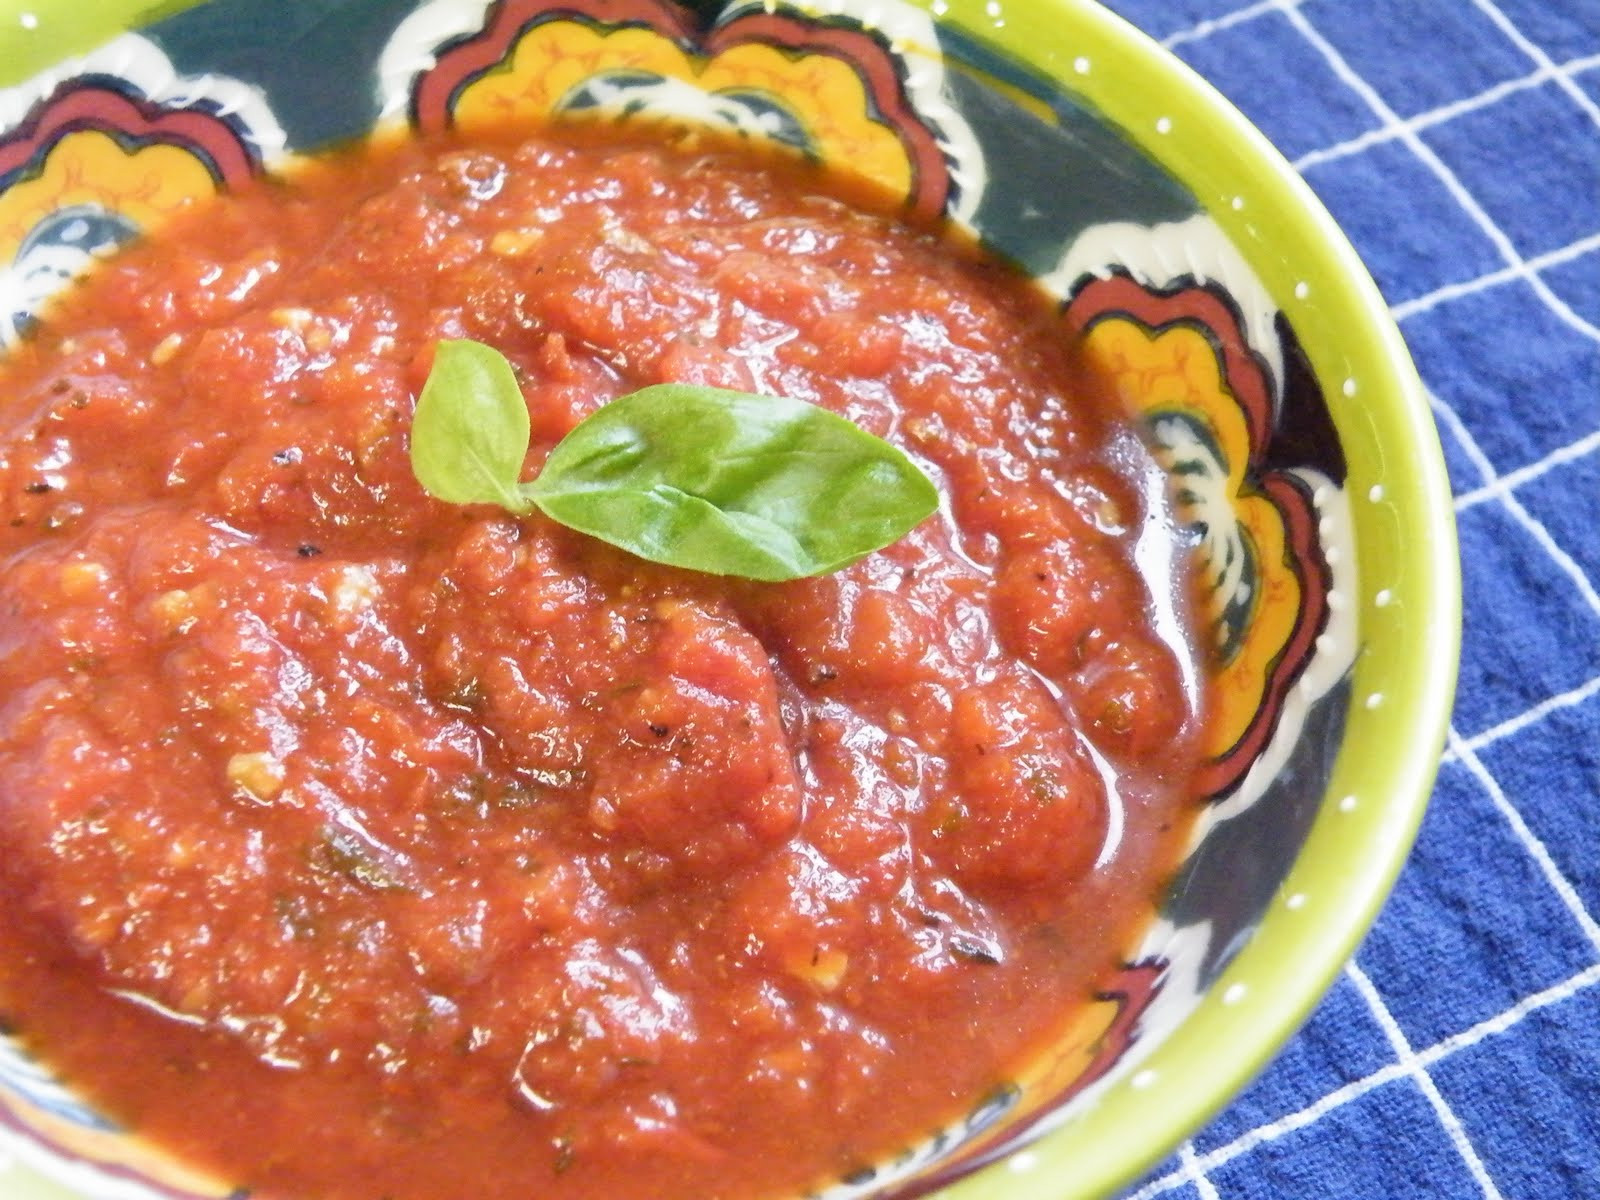 Spicy Tomato Sauce  Vittles and Bits Spicy Tomato Sauce